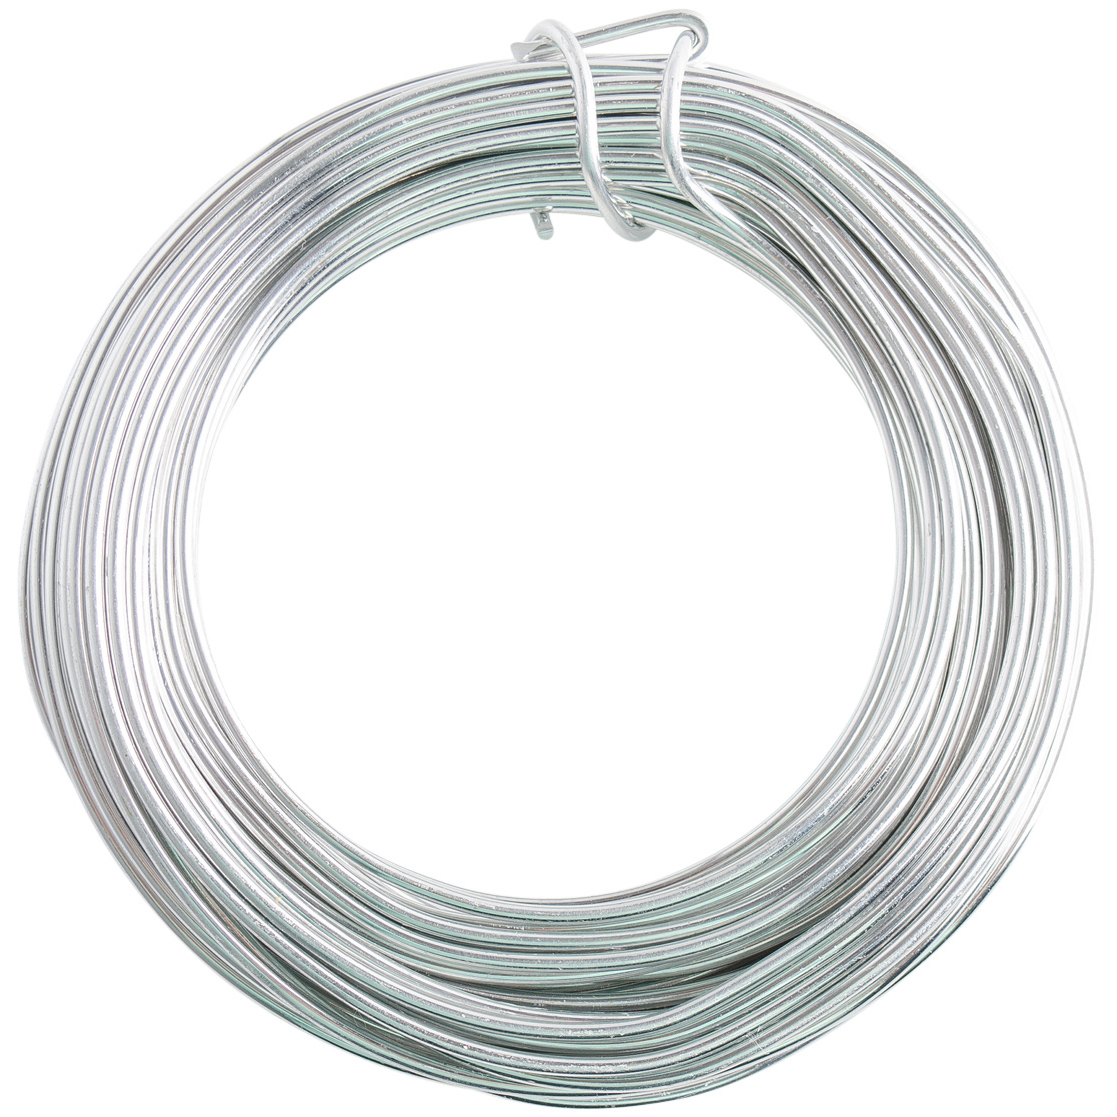 12 Gauge Silver Enameled Aluminum Wire - 40FT: Wire Jewelry   Wire ...